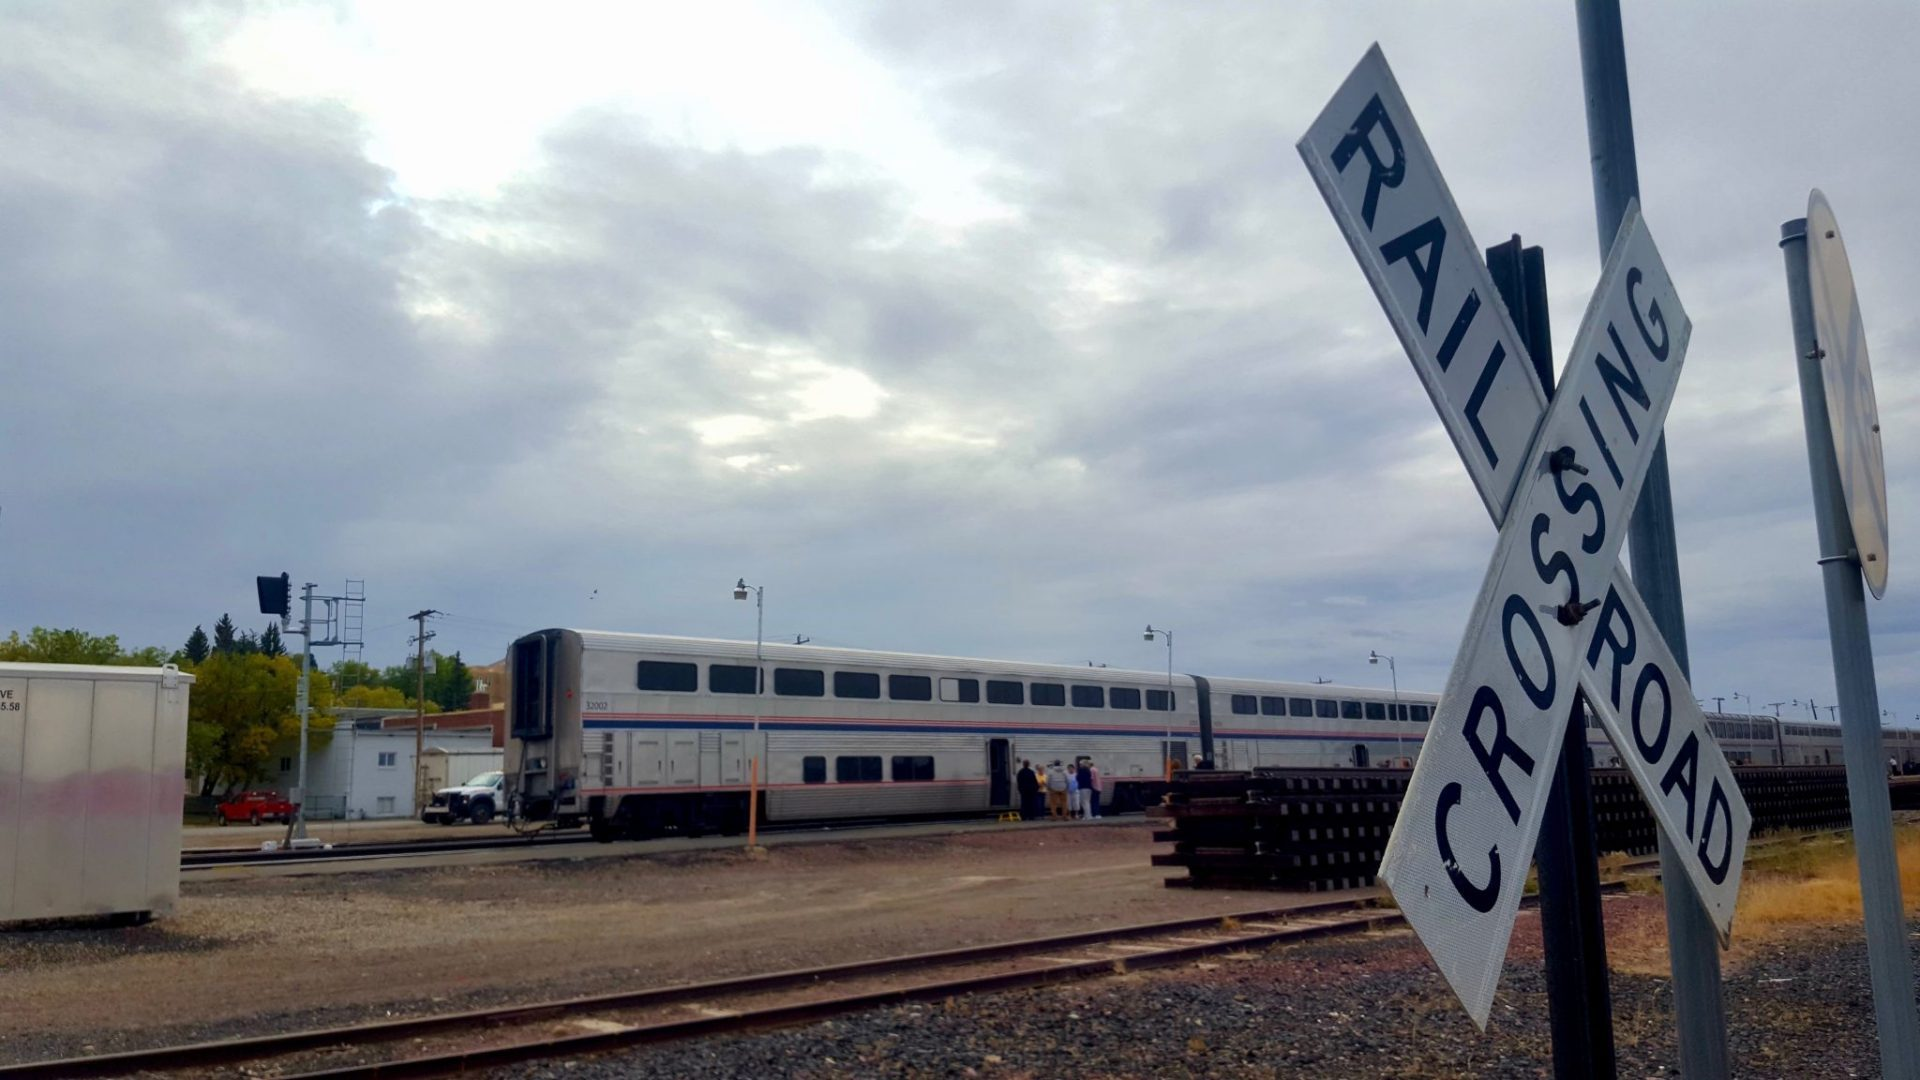 Amtrak Empire Builder Review + Travel Tips for Rail Trip